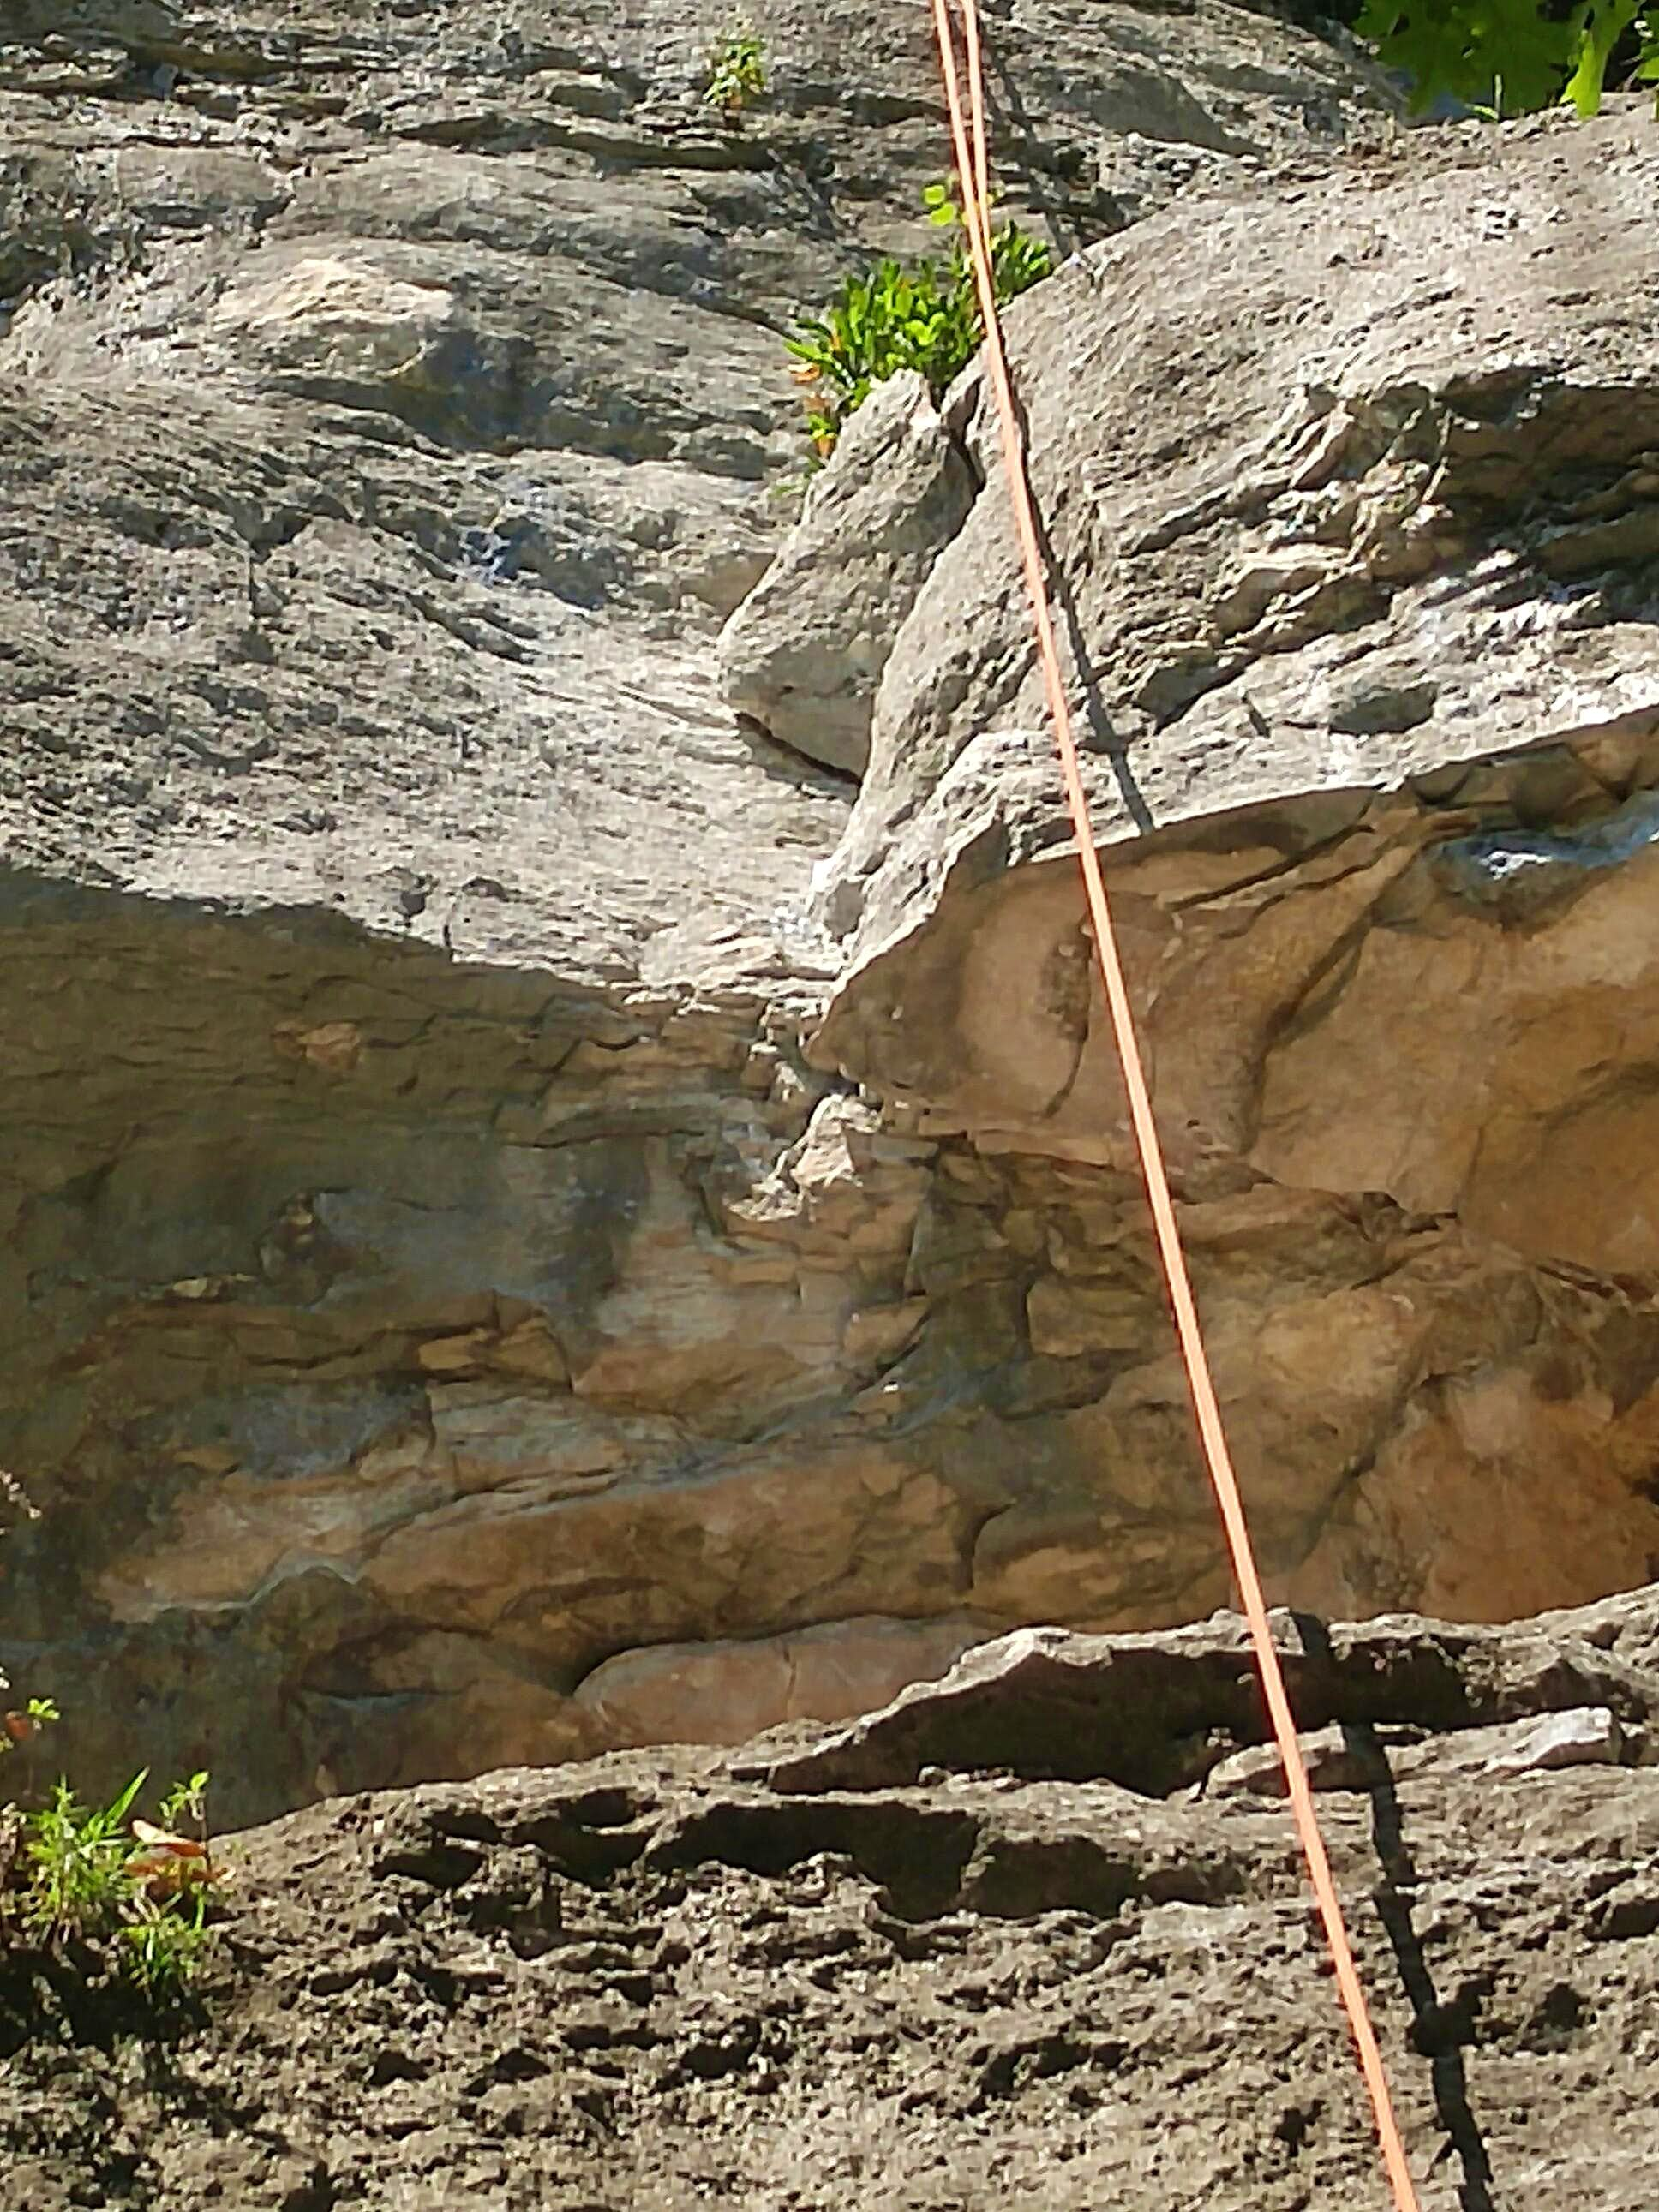 Rubber Wall (5.8-5.11b)